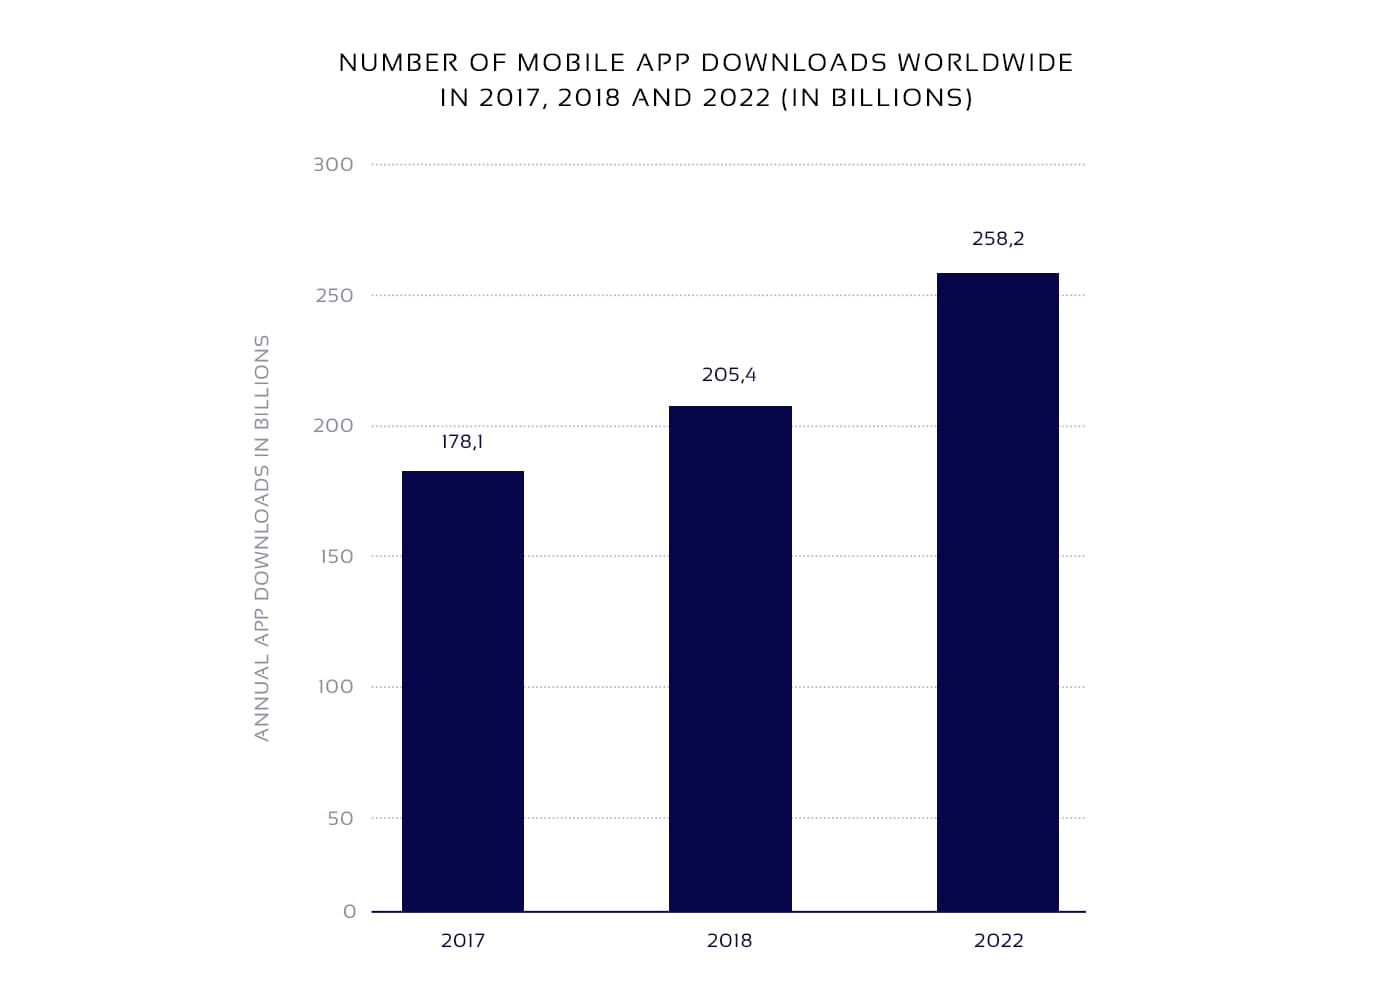 Mobile app downloads in billions - statistics for eCommerce apps